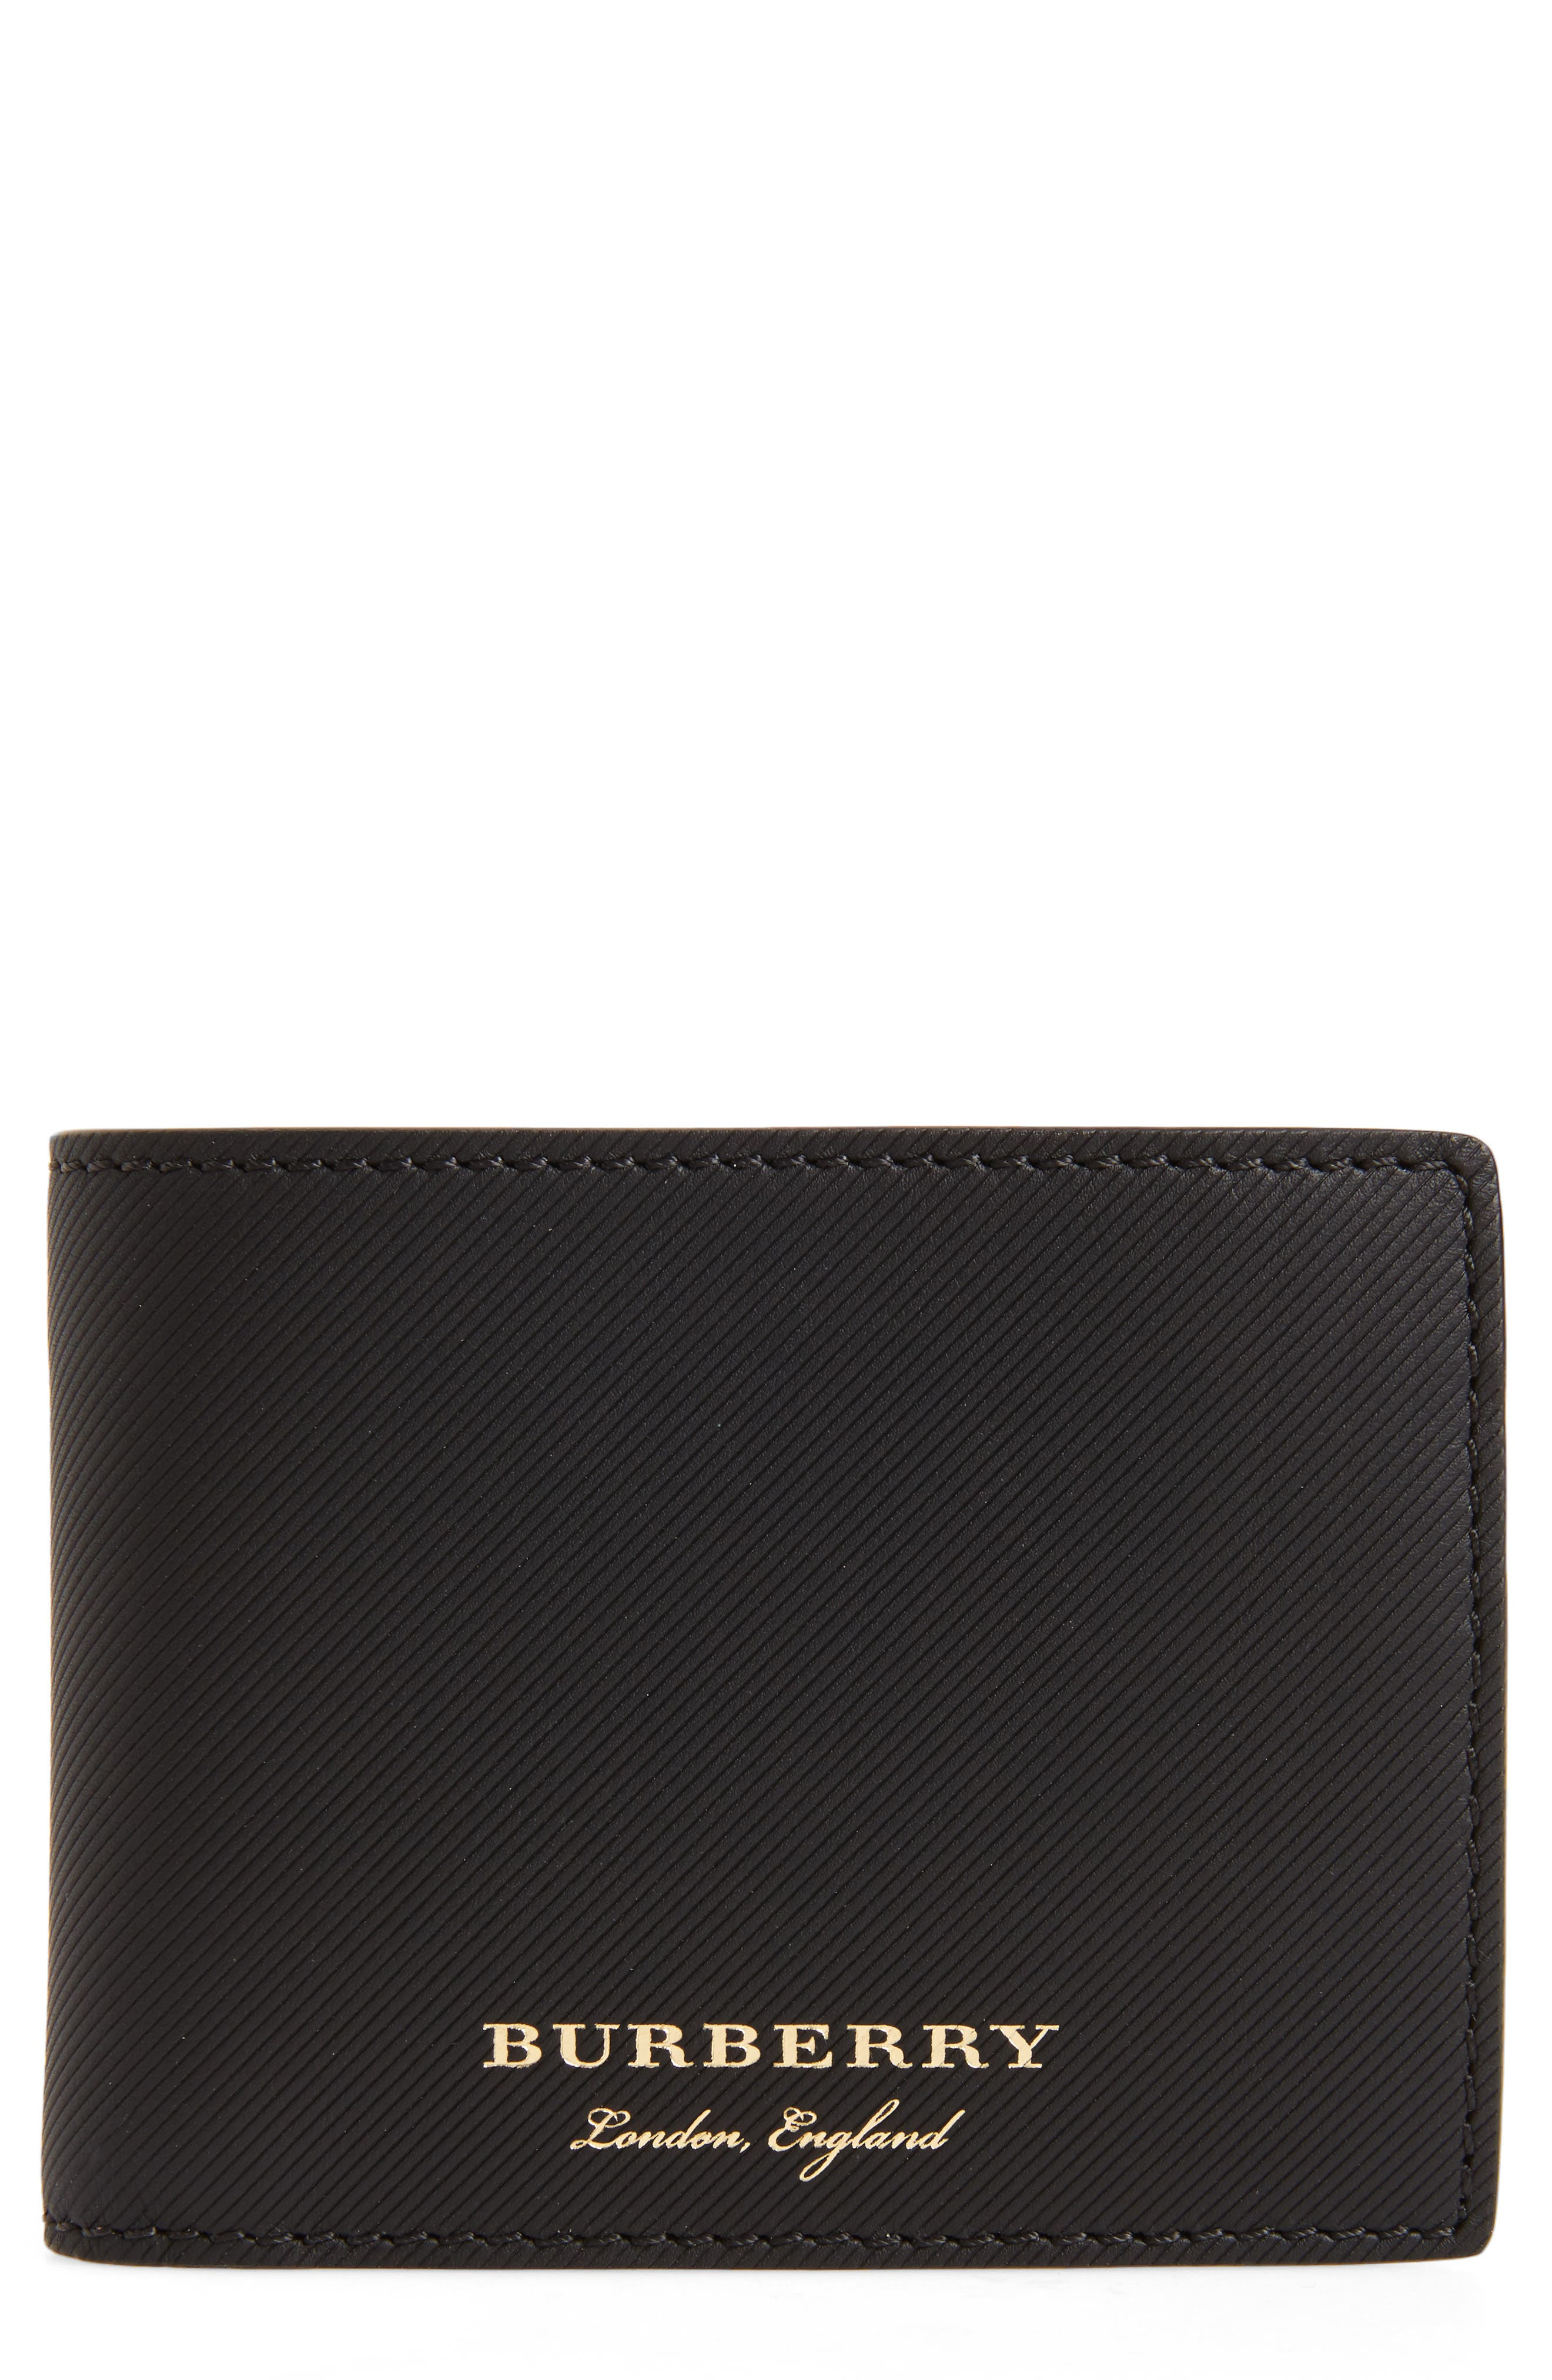 Alternate Image 1 Selected - Burberry Leather Bifold Wallet